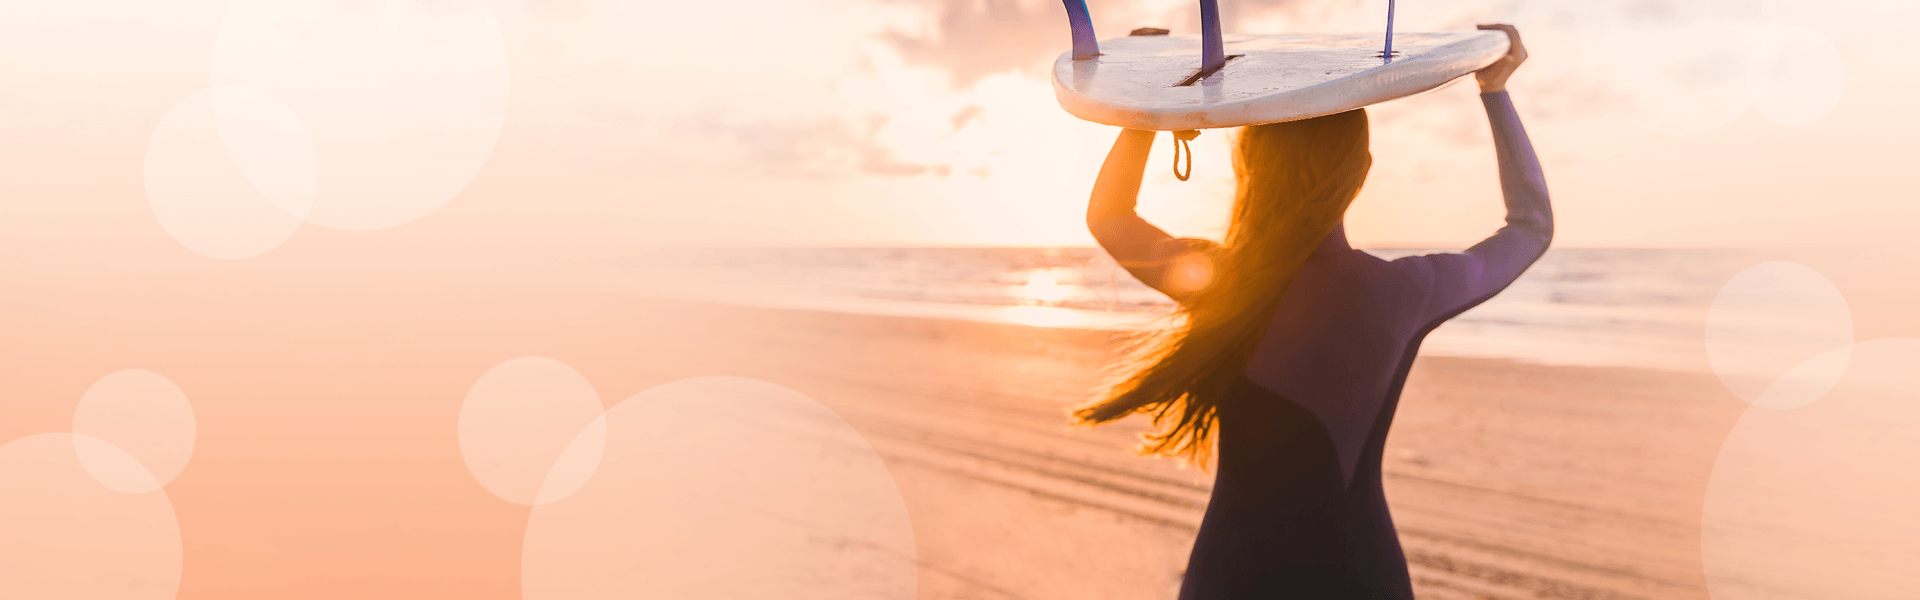 Woman on beach, with surfboard, looking out at sunset.